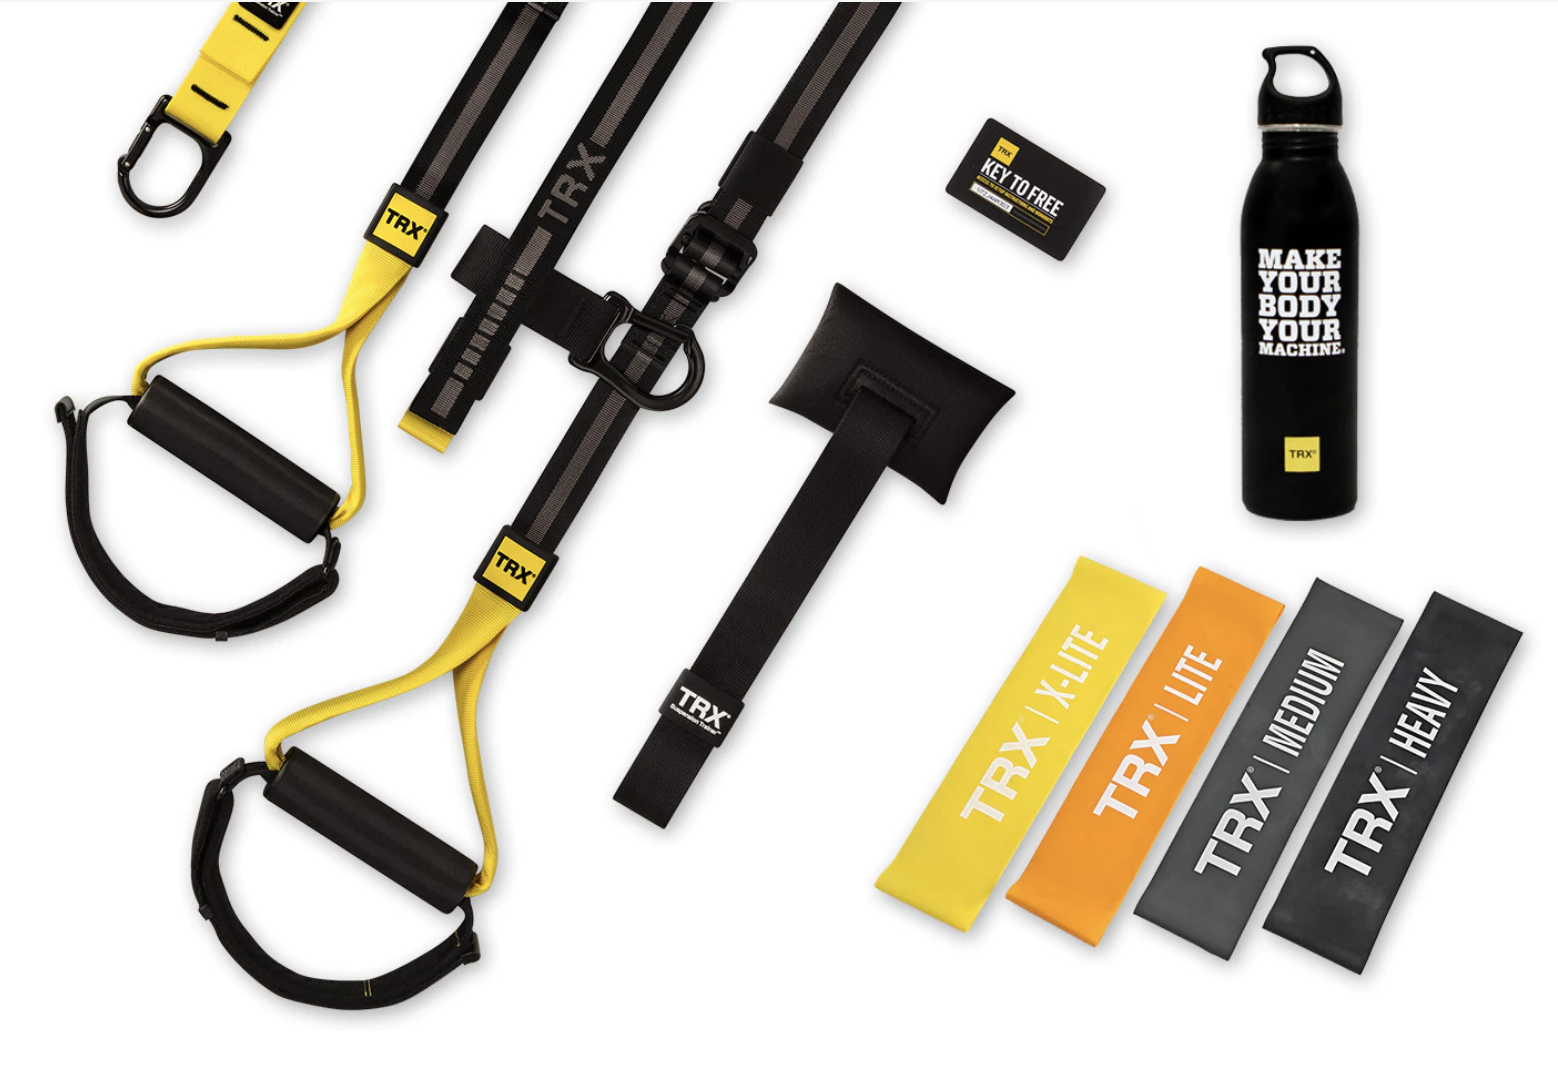 TRX Home2, door anchor, exercise bands, and water bottle